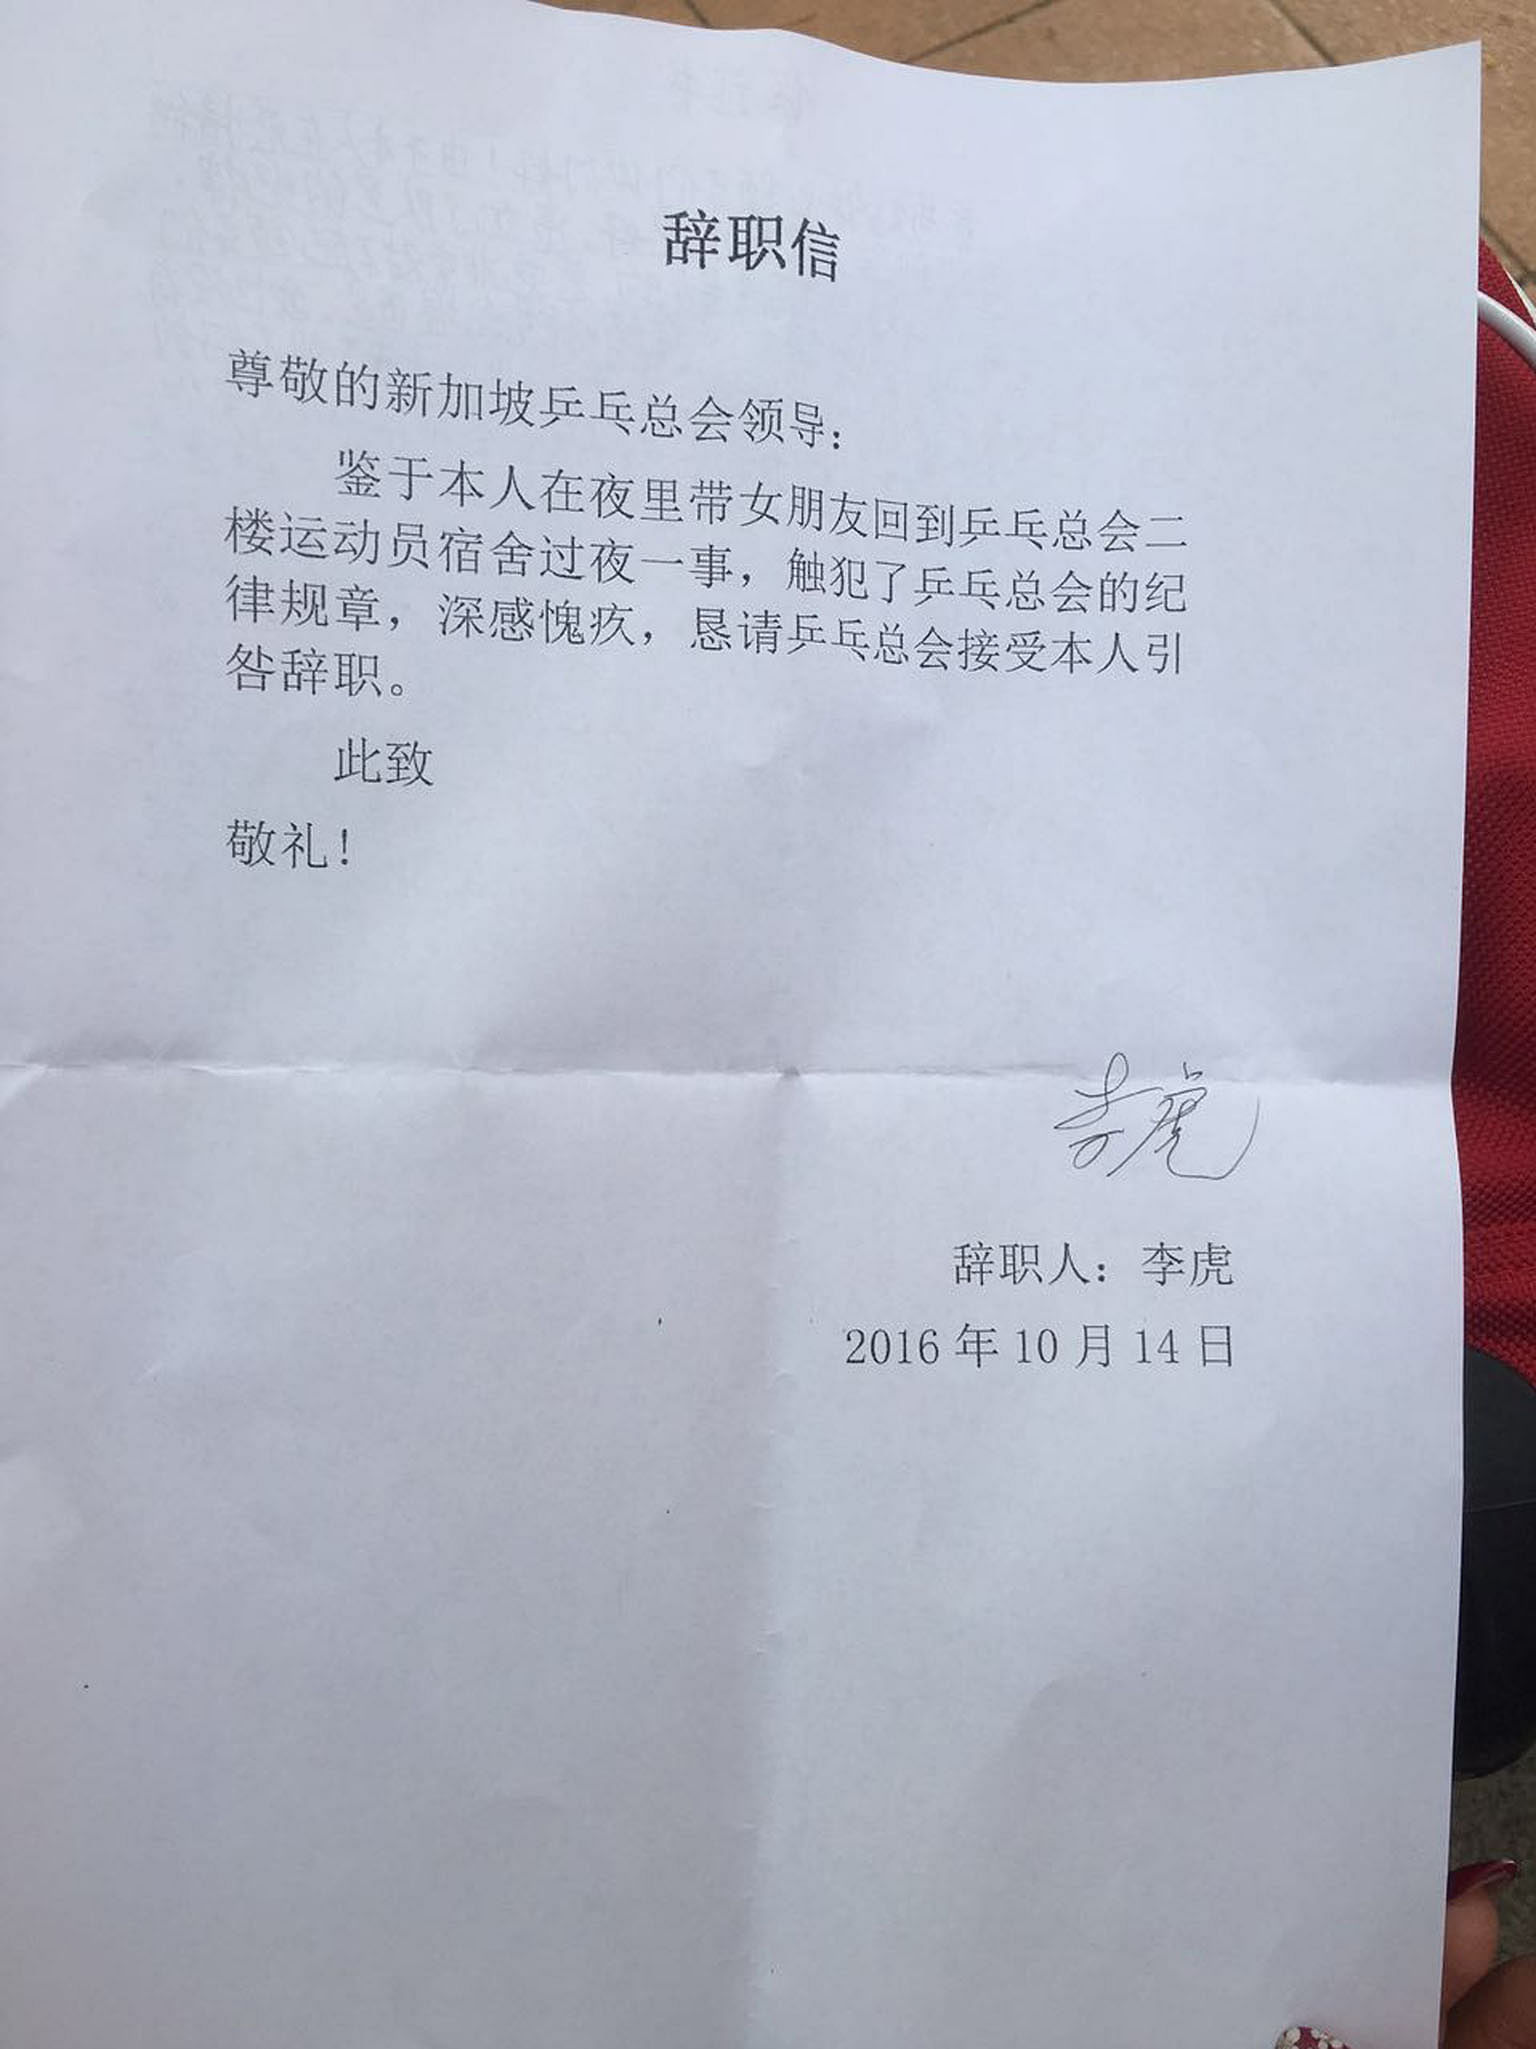 national paddler li hu suspended for breaking house rules after li hu was asked to sign a resignation letter prepared by the singapore table tennis association it is dated oct 14 photo courtesy of li hu